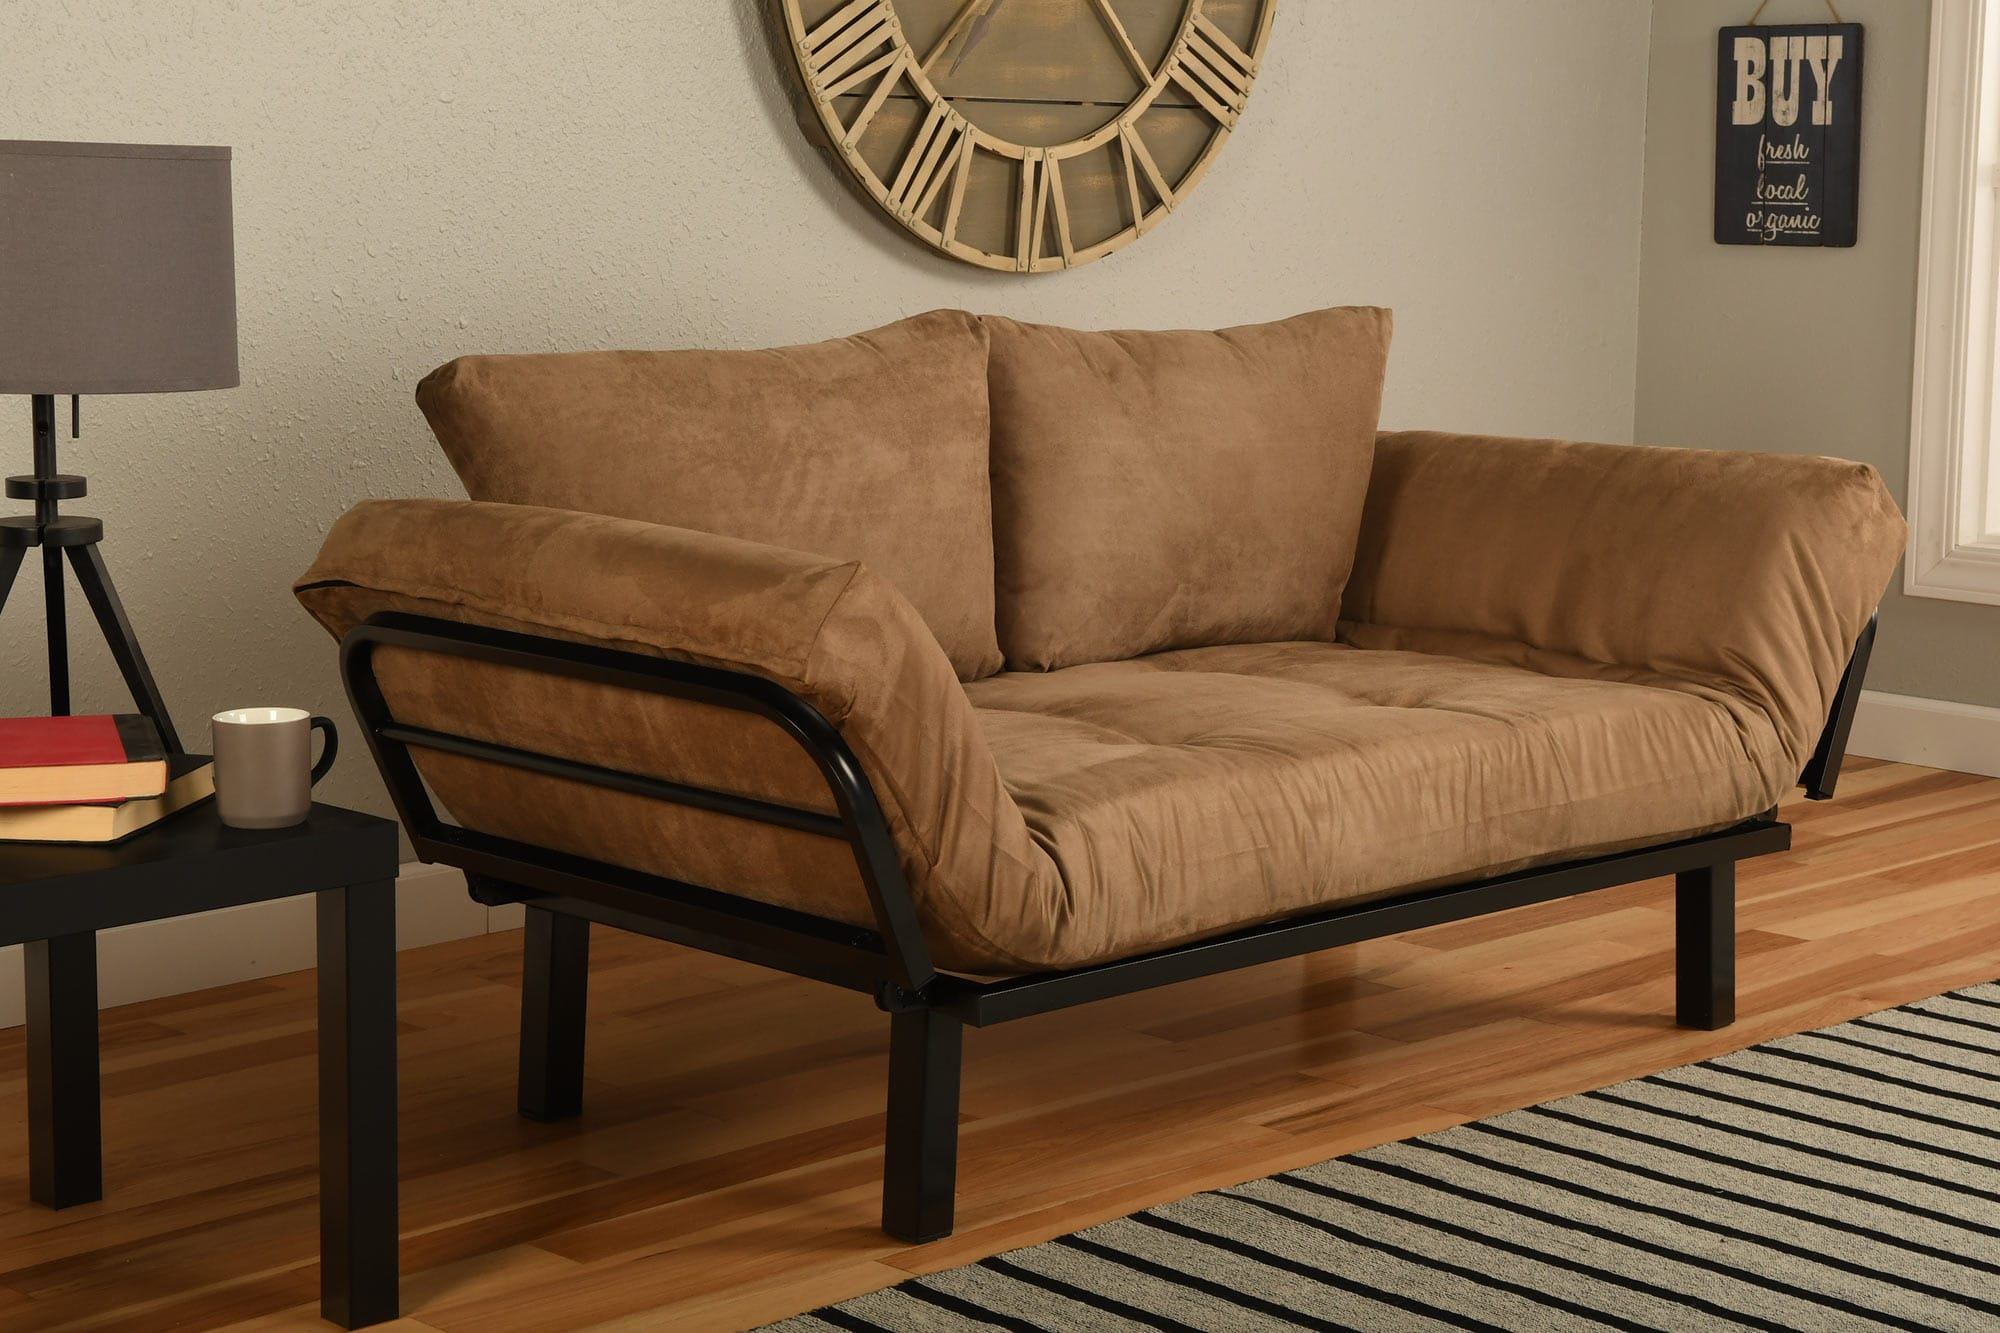 Ely Futon Daybed Lounger With